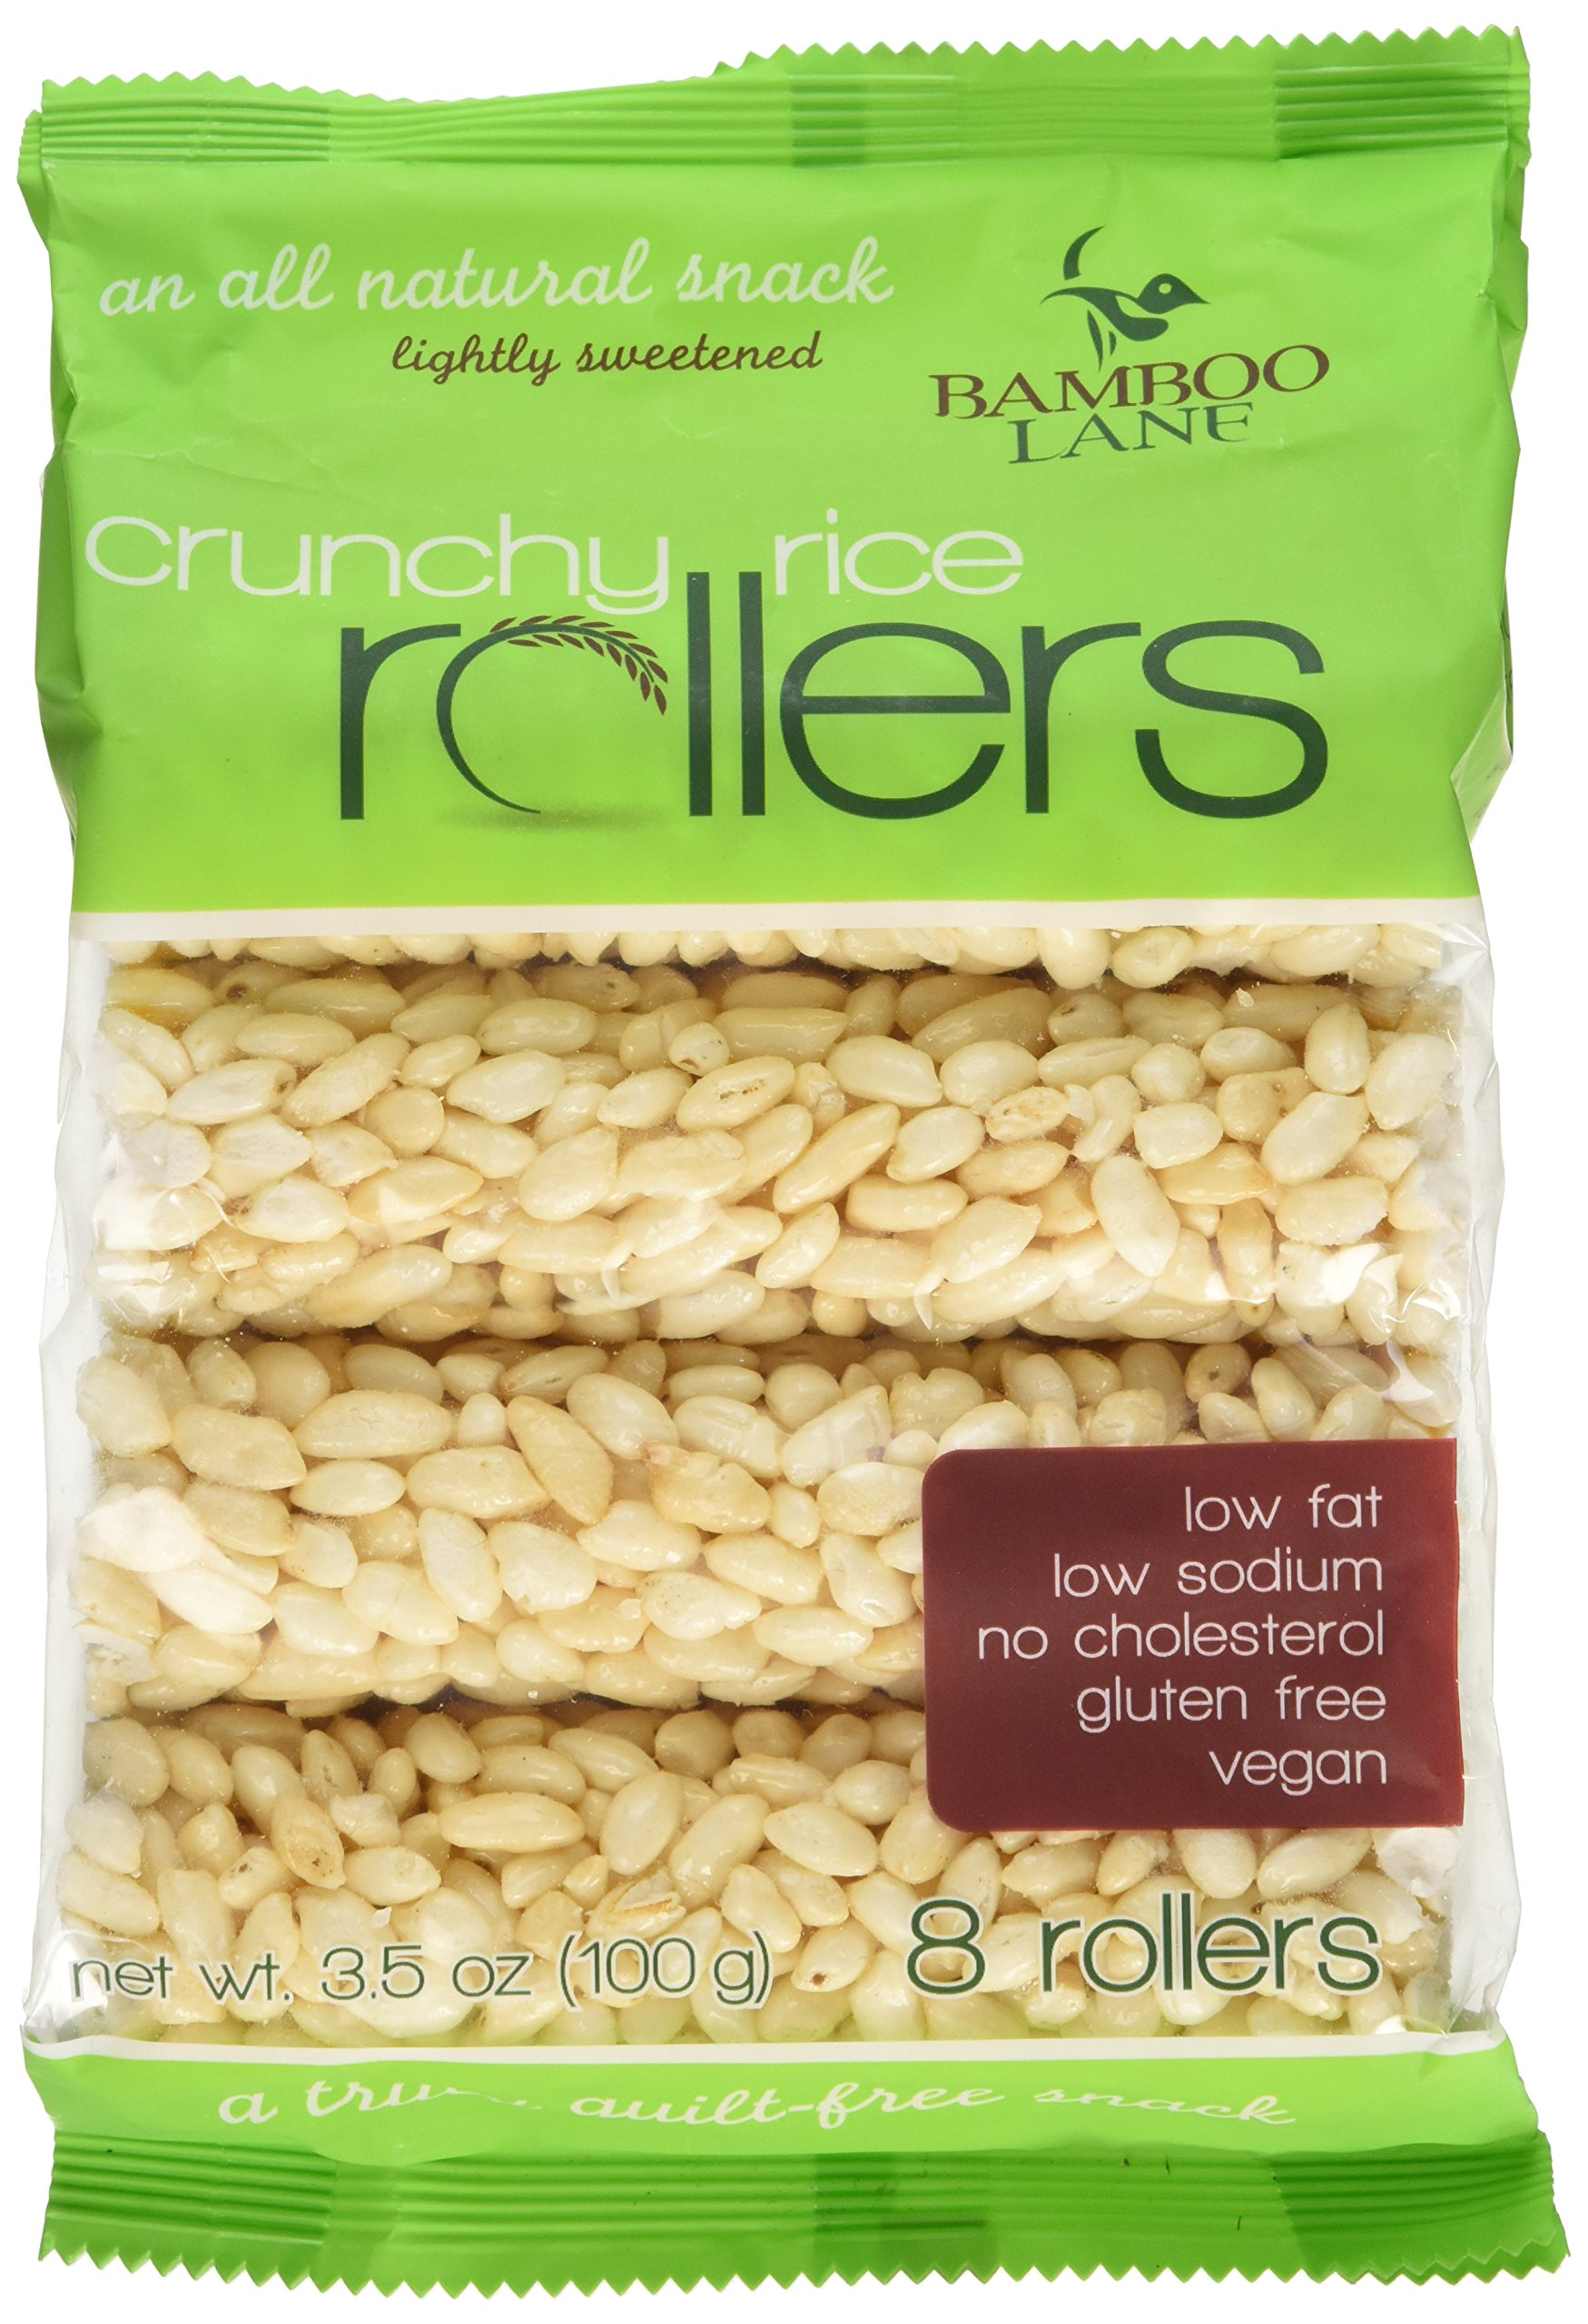 Bamboo Lane Crunchy Rice Rollers: 3.5oz 8 Packs of 8 Rollers by Crunchy Rice Rollers